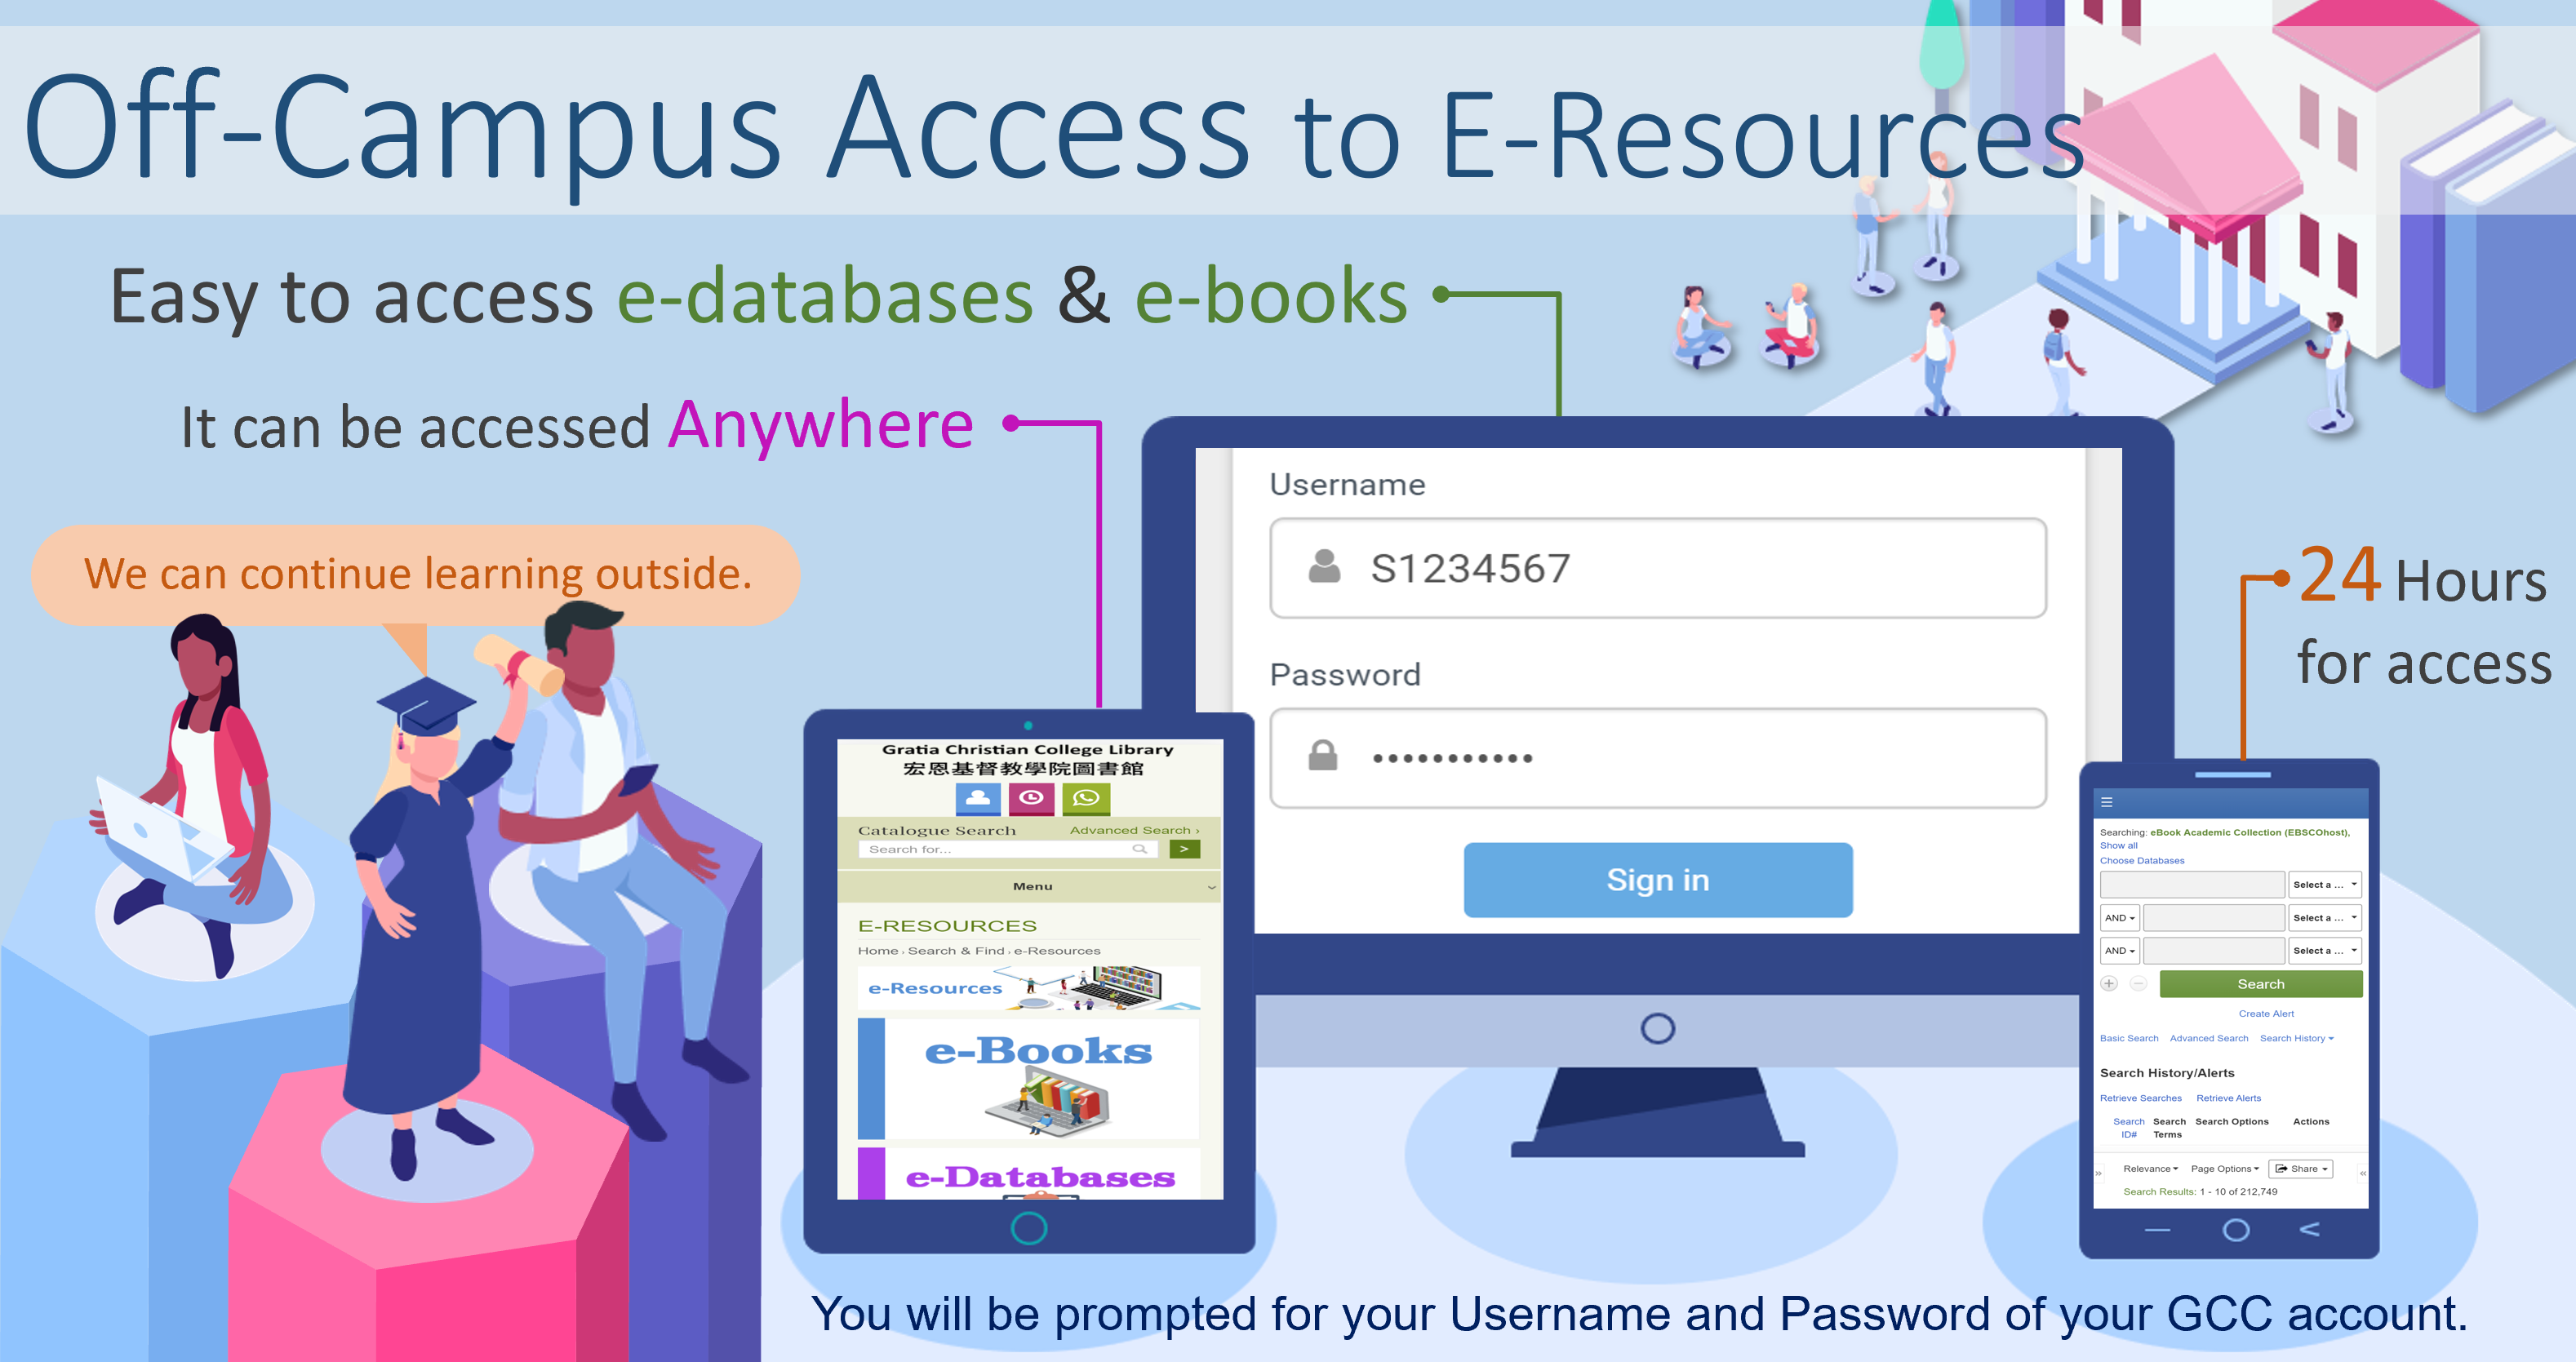 Off-Campus access for e-resources